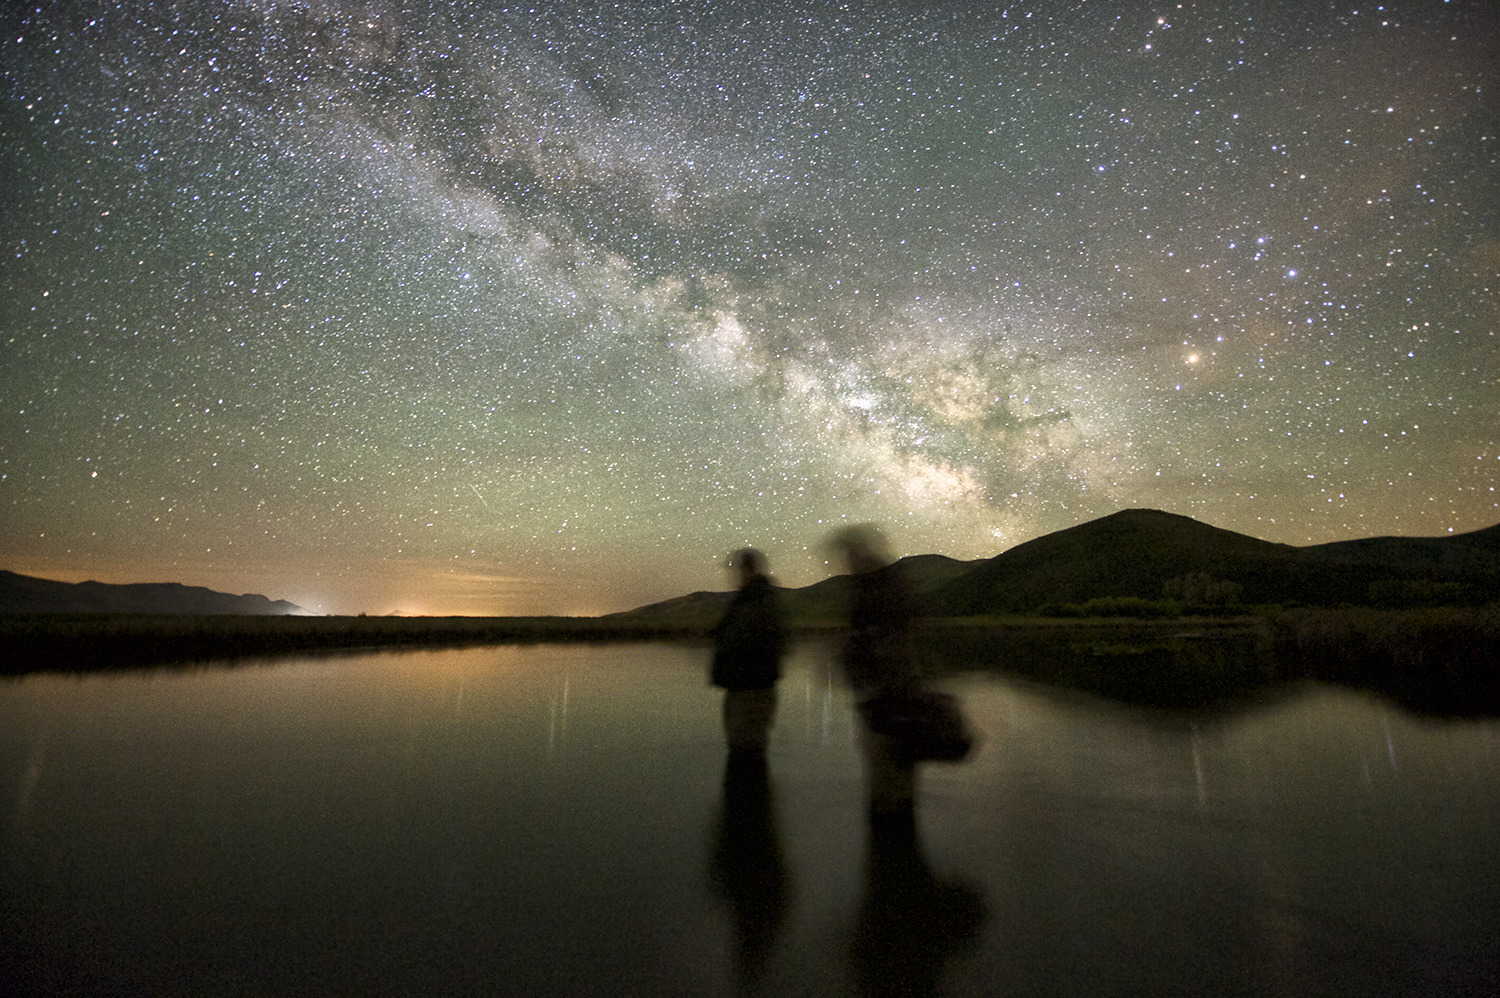 Silver Creek, two fishermen and the milky way.